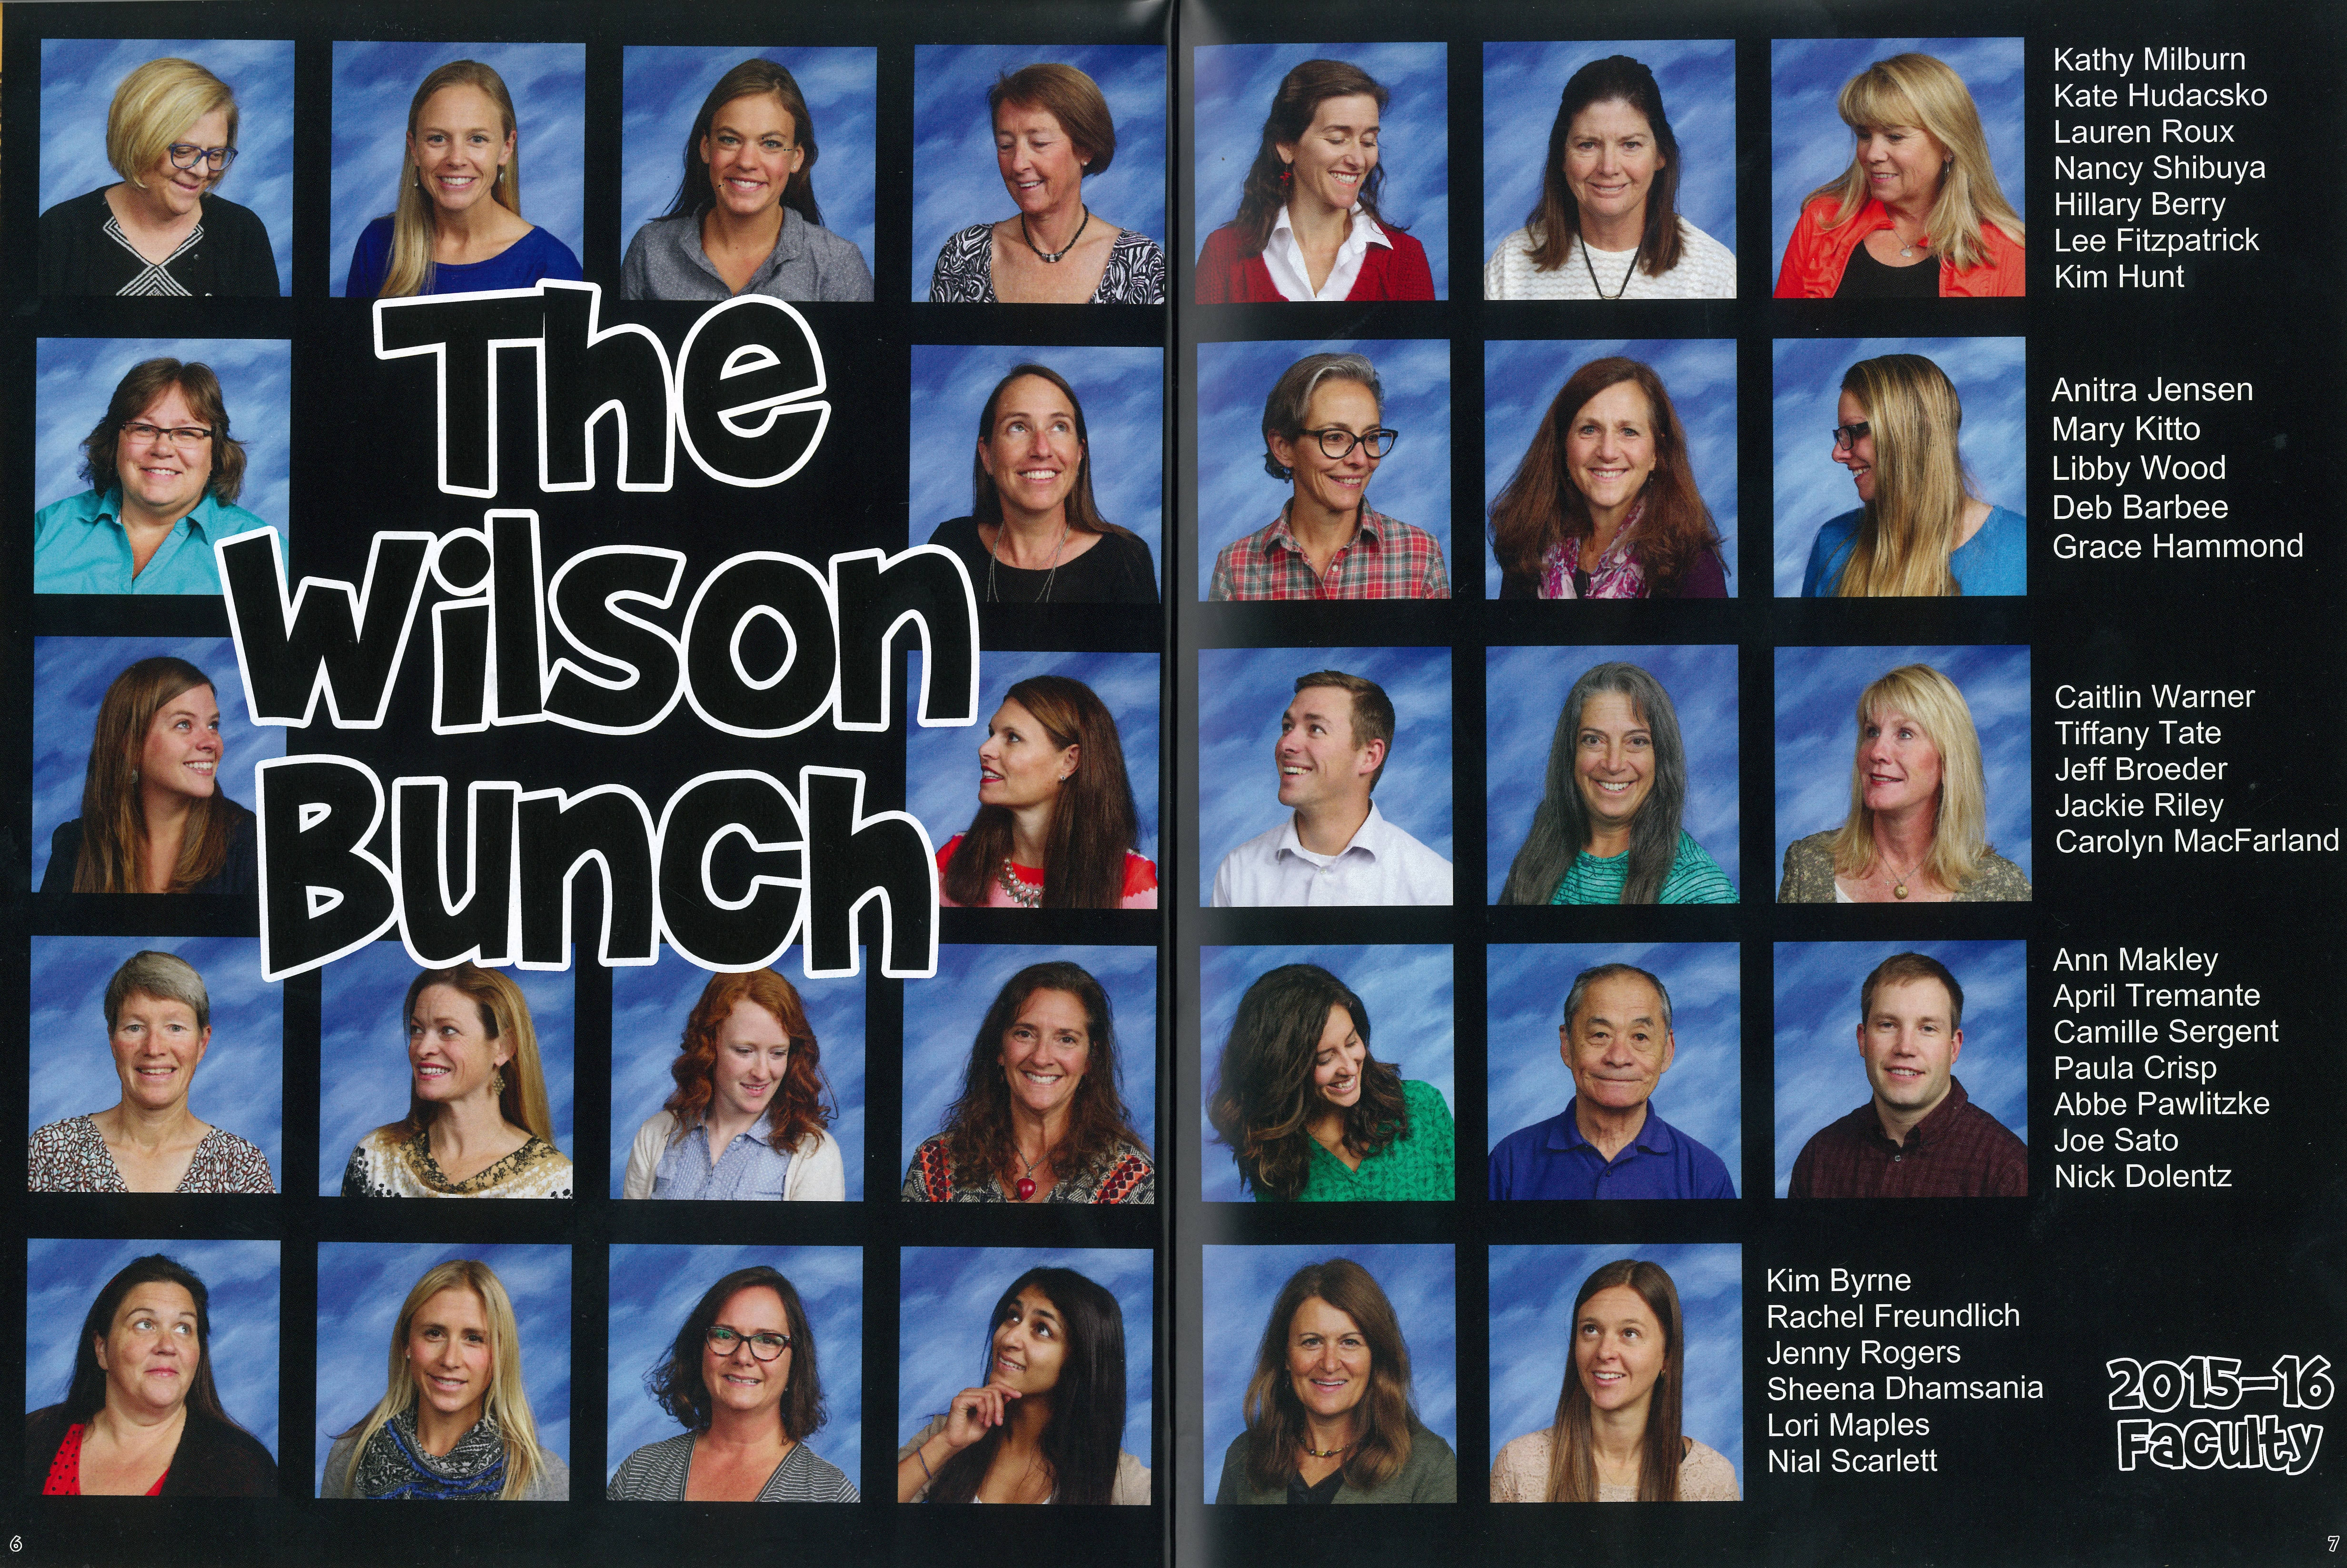 brady bunch themed faculty pages in your yearbook is a fun idea